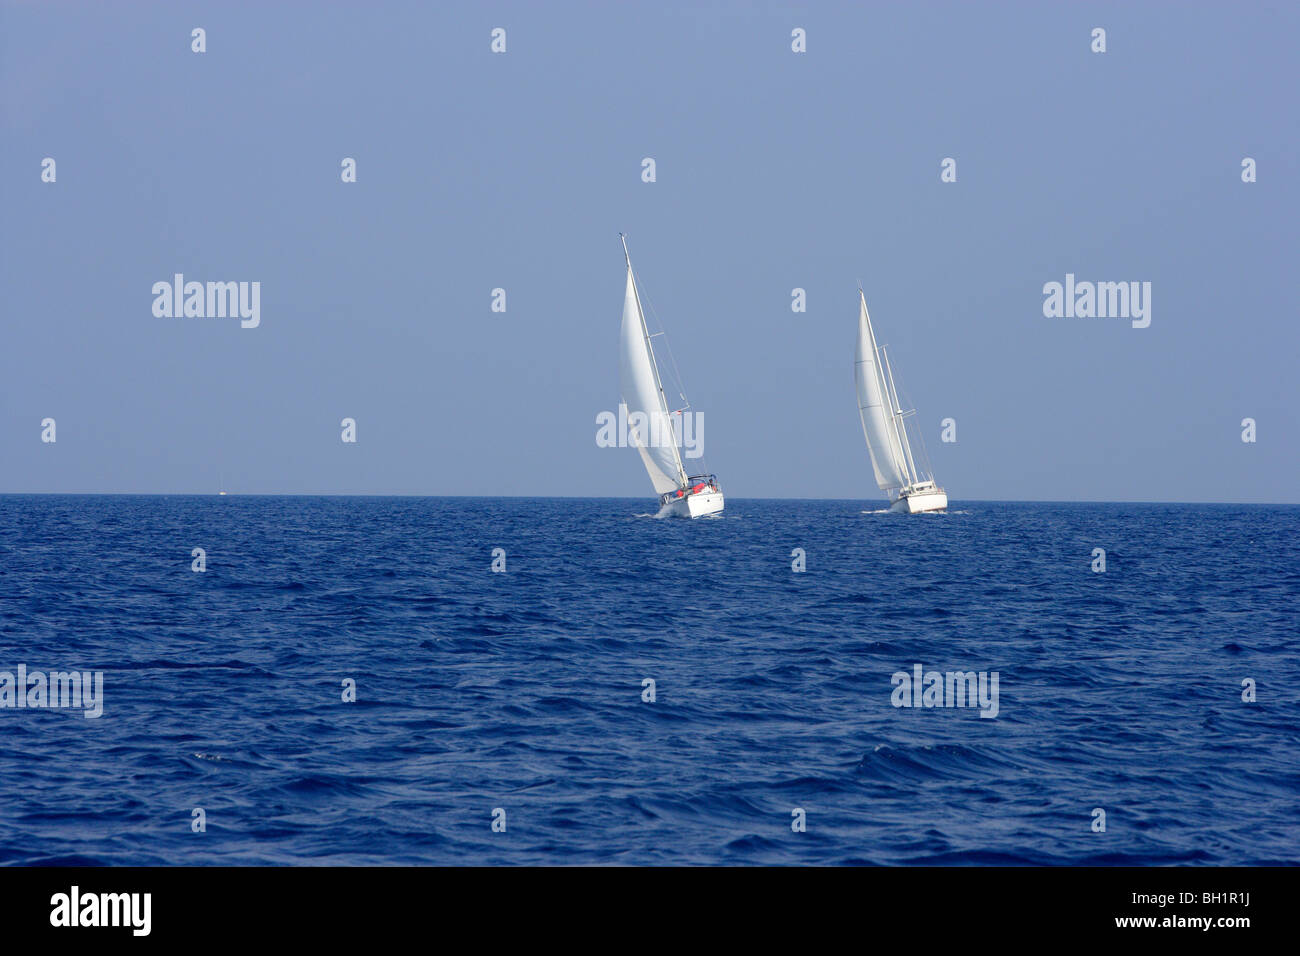 Two sailing boats on the sea, Ionian Islands, Greece - Stock Image